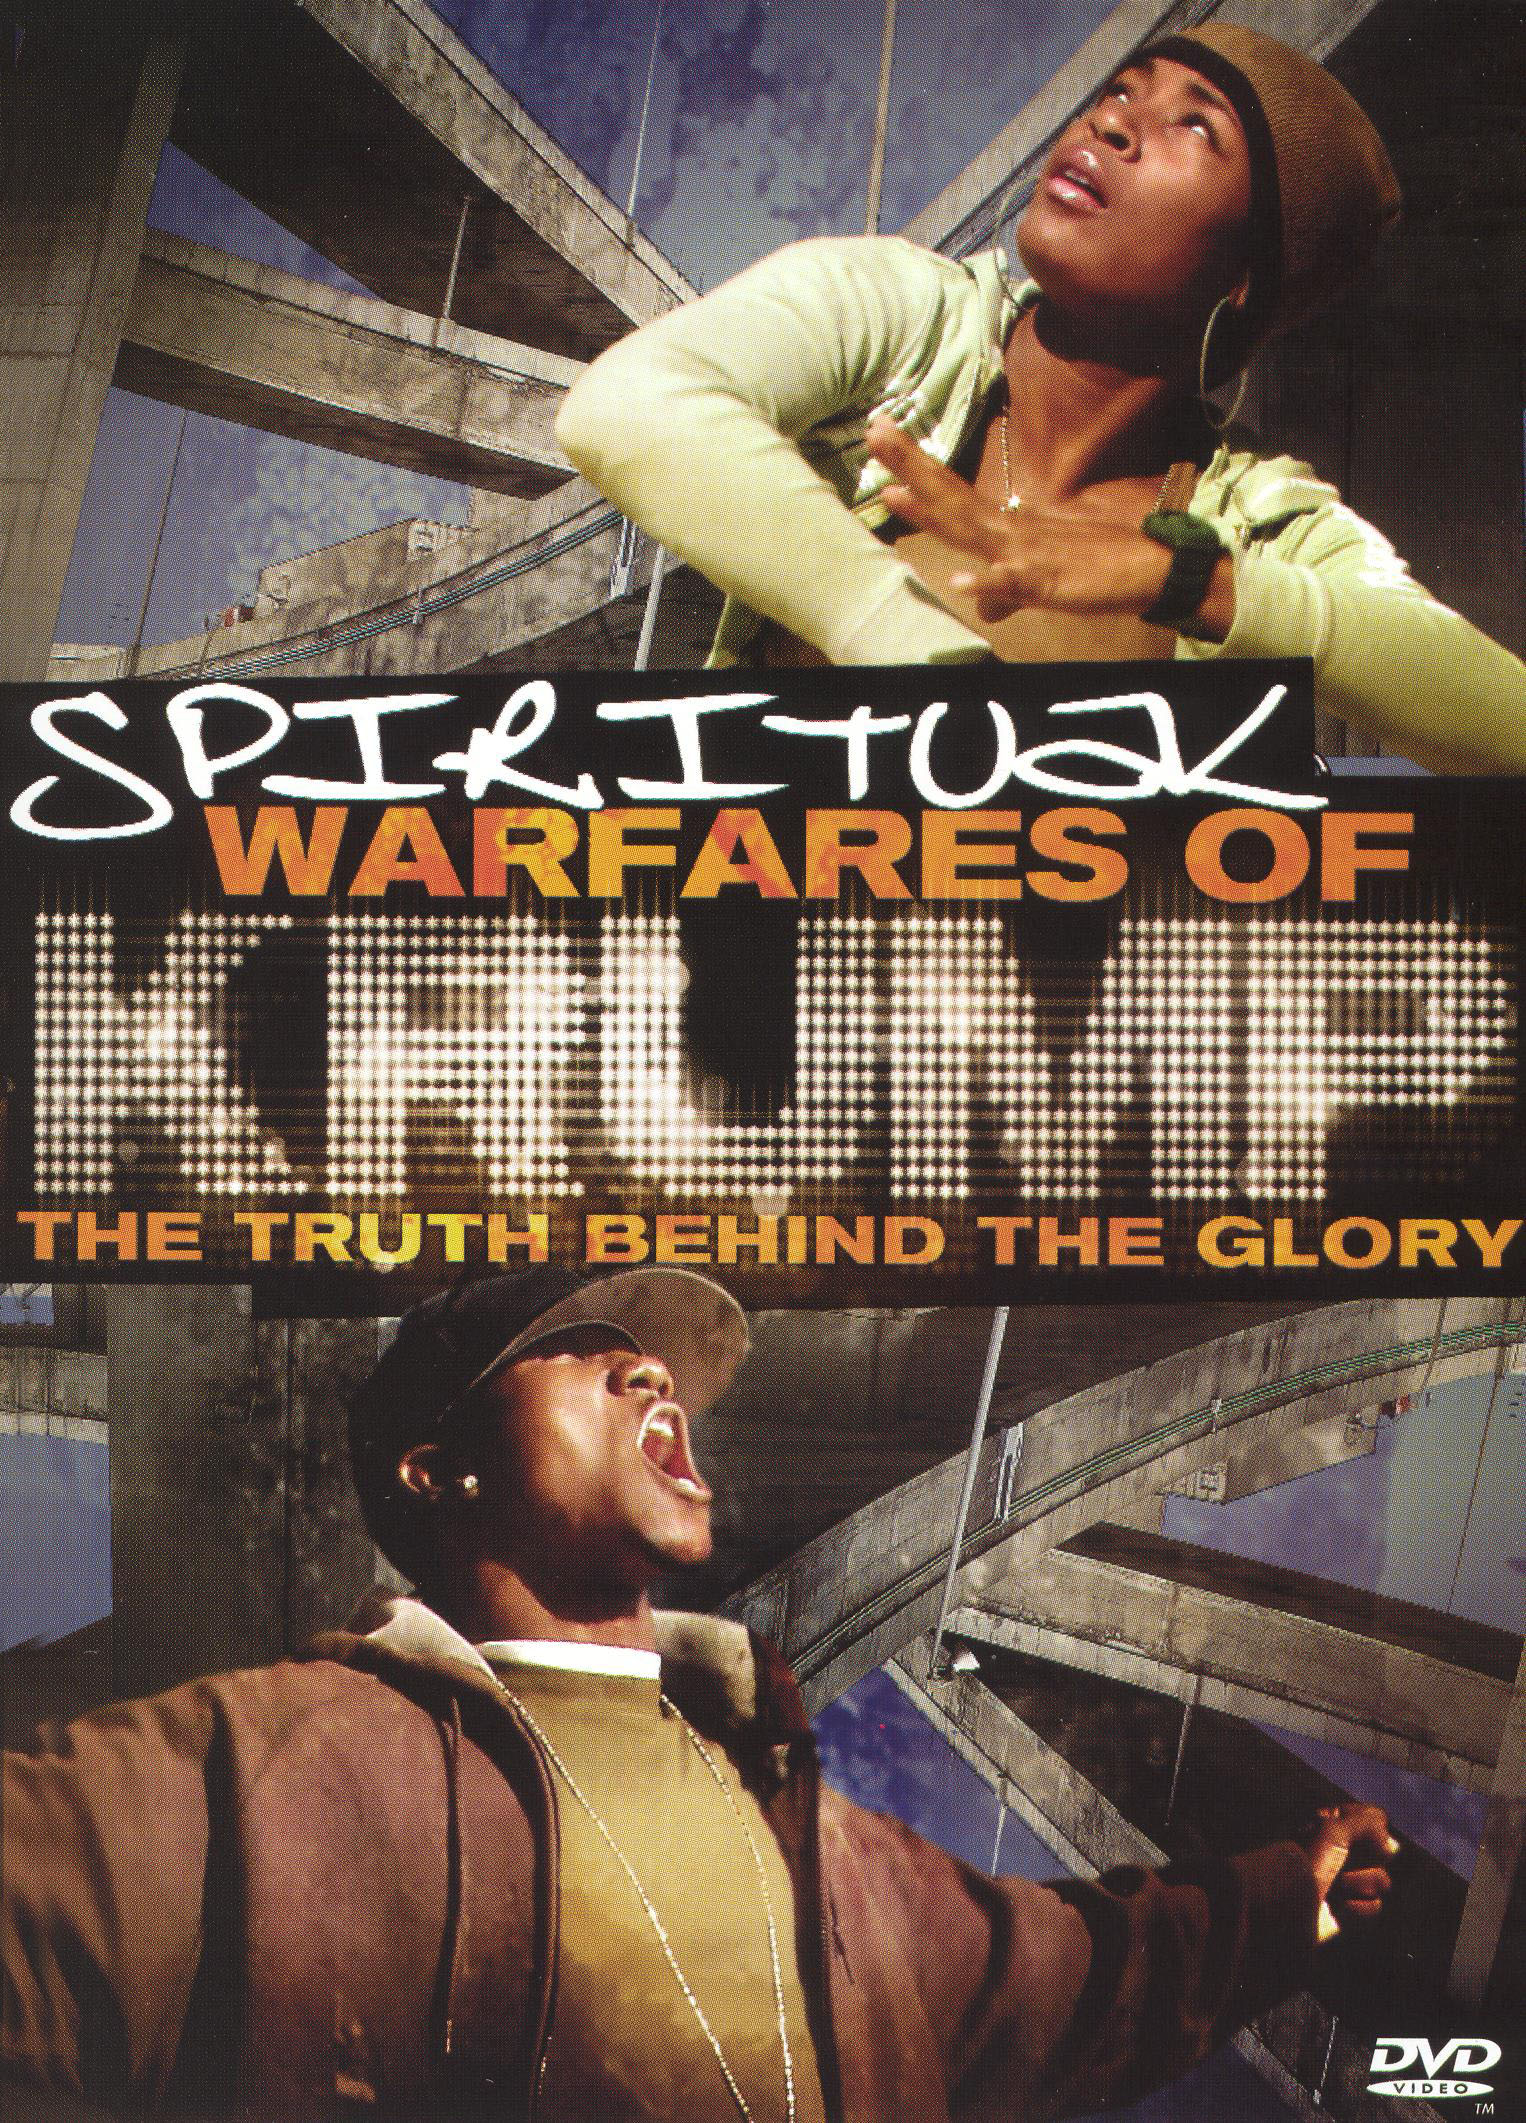 Spiritual Warfares of Krump